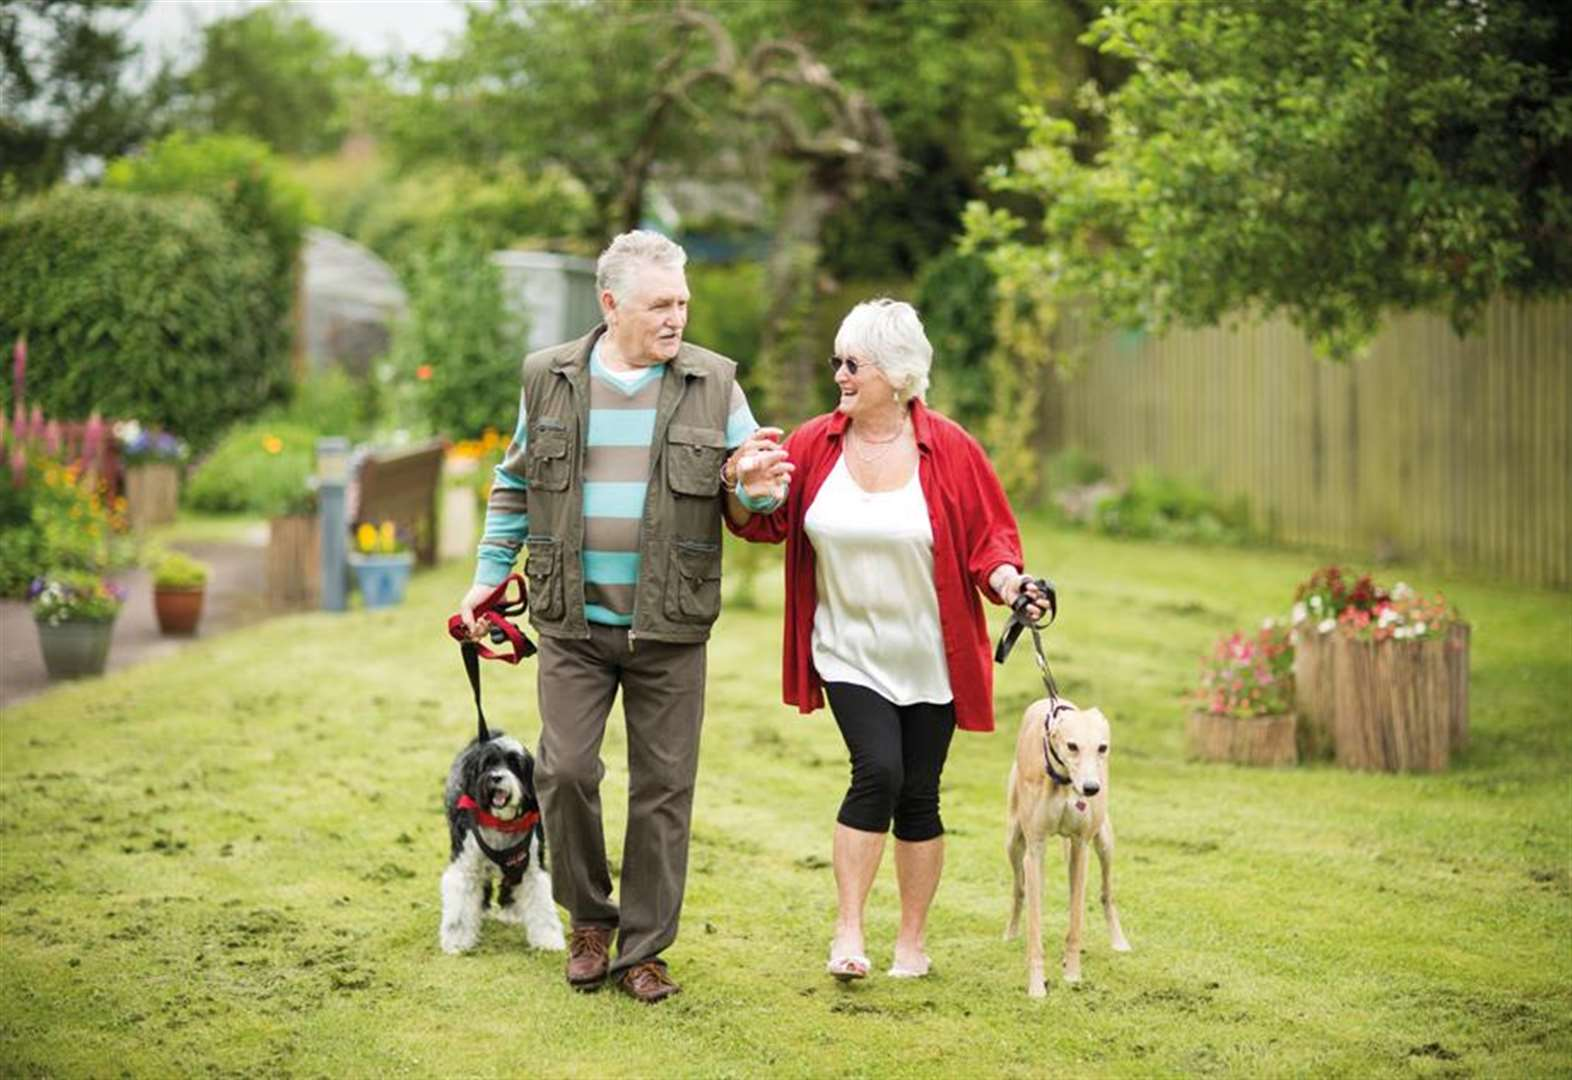 Housing association recognised for pet friendly culture